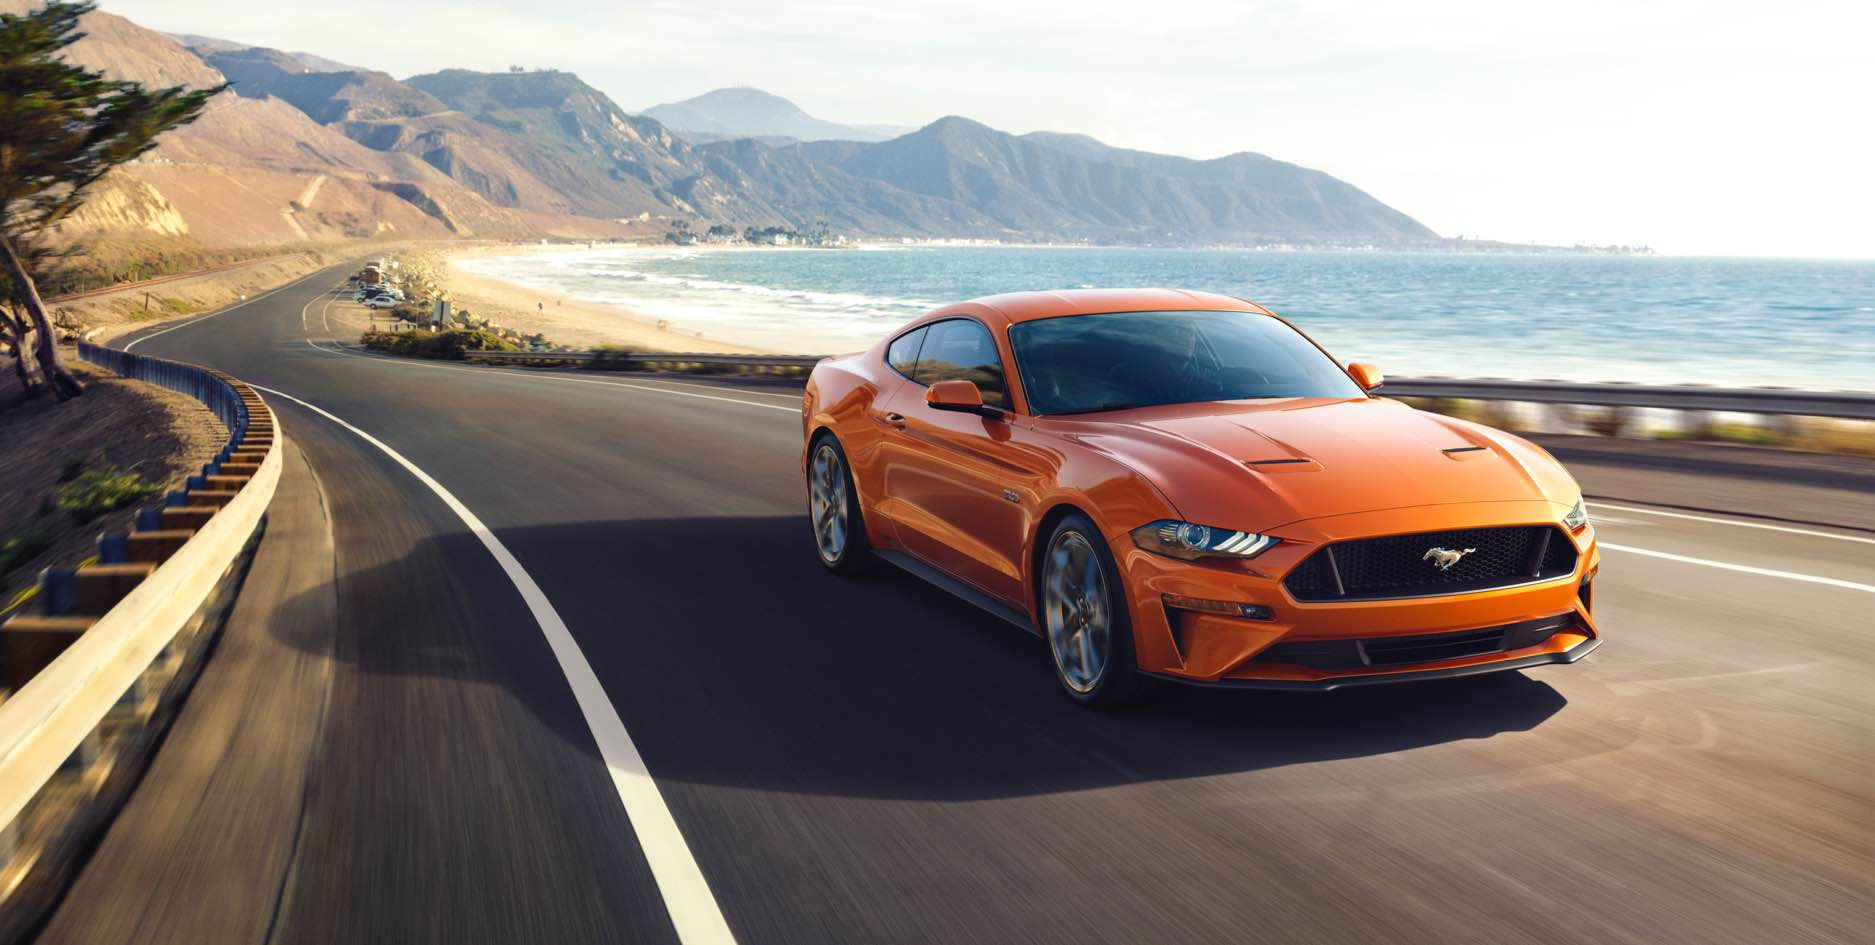 2018 Mustang Gallery 3 Santa Monica Ford Lincoln | New Ford dealership in Santa Monica, CA 90404